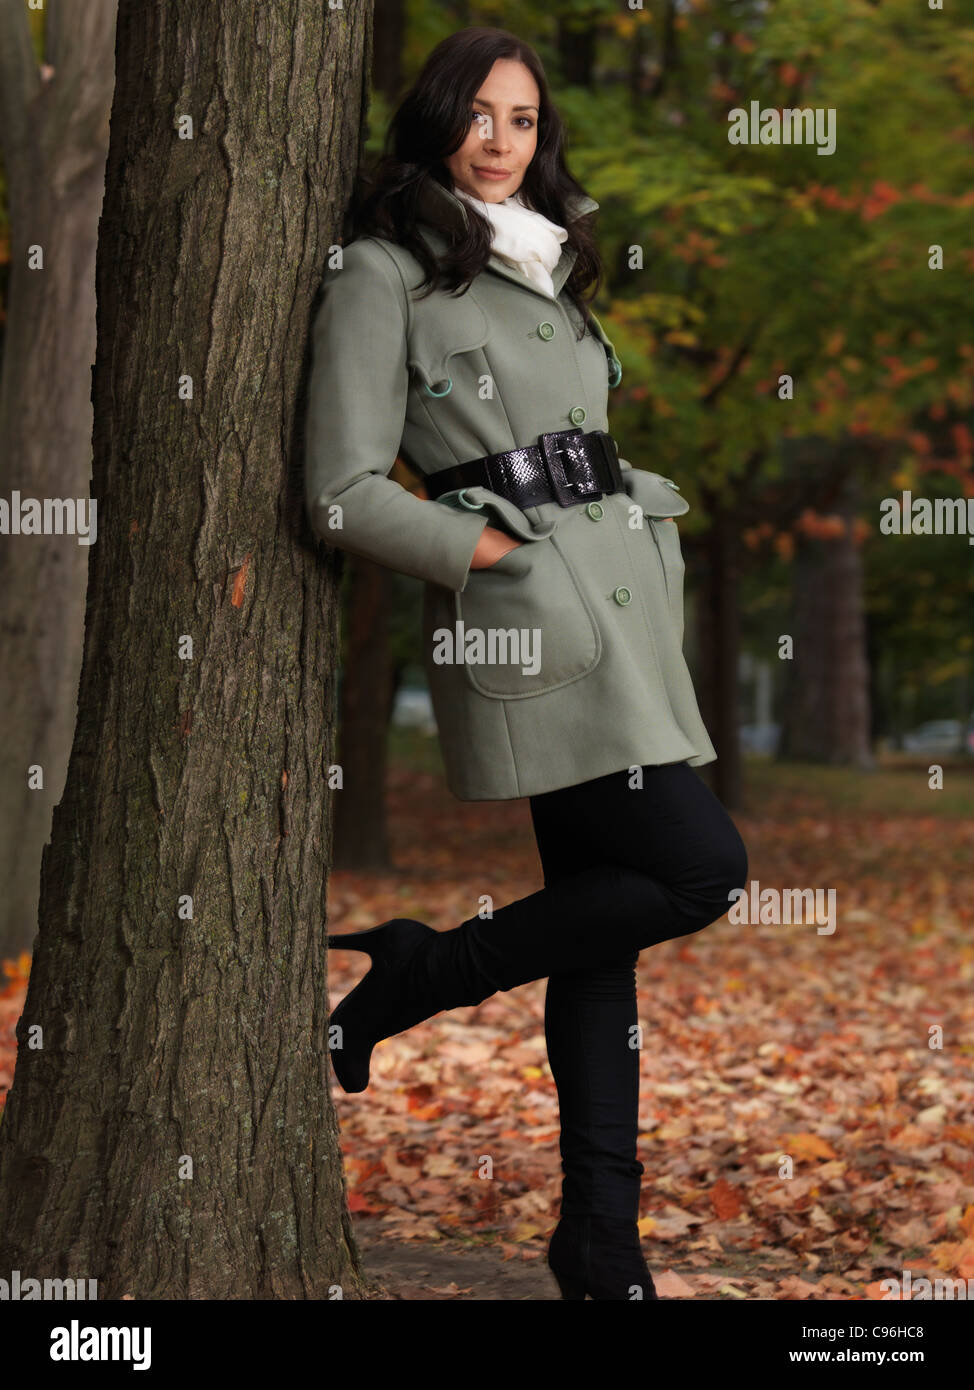 Fashionably dressed for autumn season, beautiful smiling young woman wearing a green coat, leaning against a maple - Stock Image